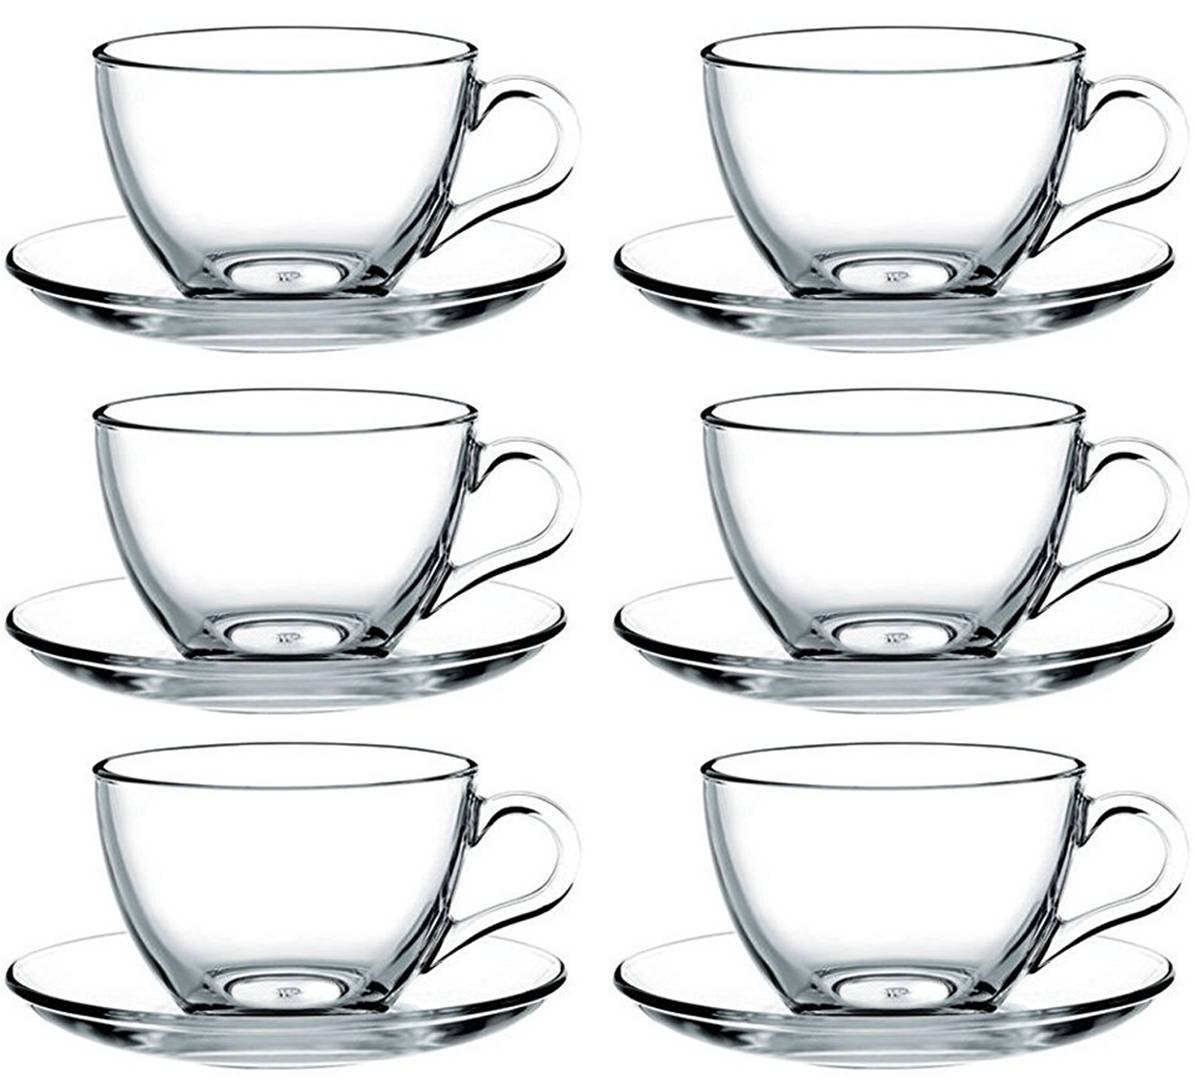 12-Piece Set of Espresso Cups with Basic Saucers Pasabahce